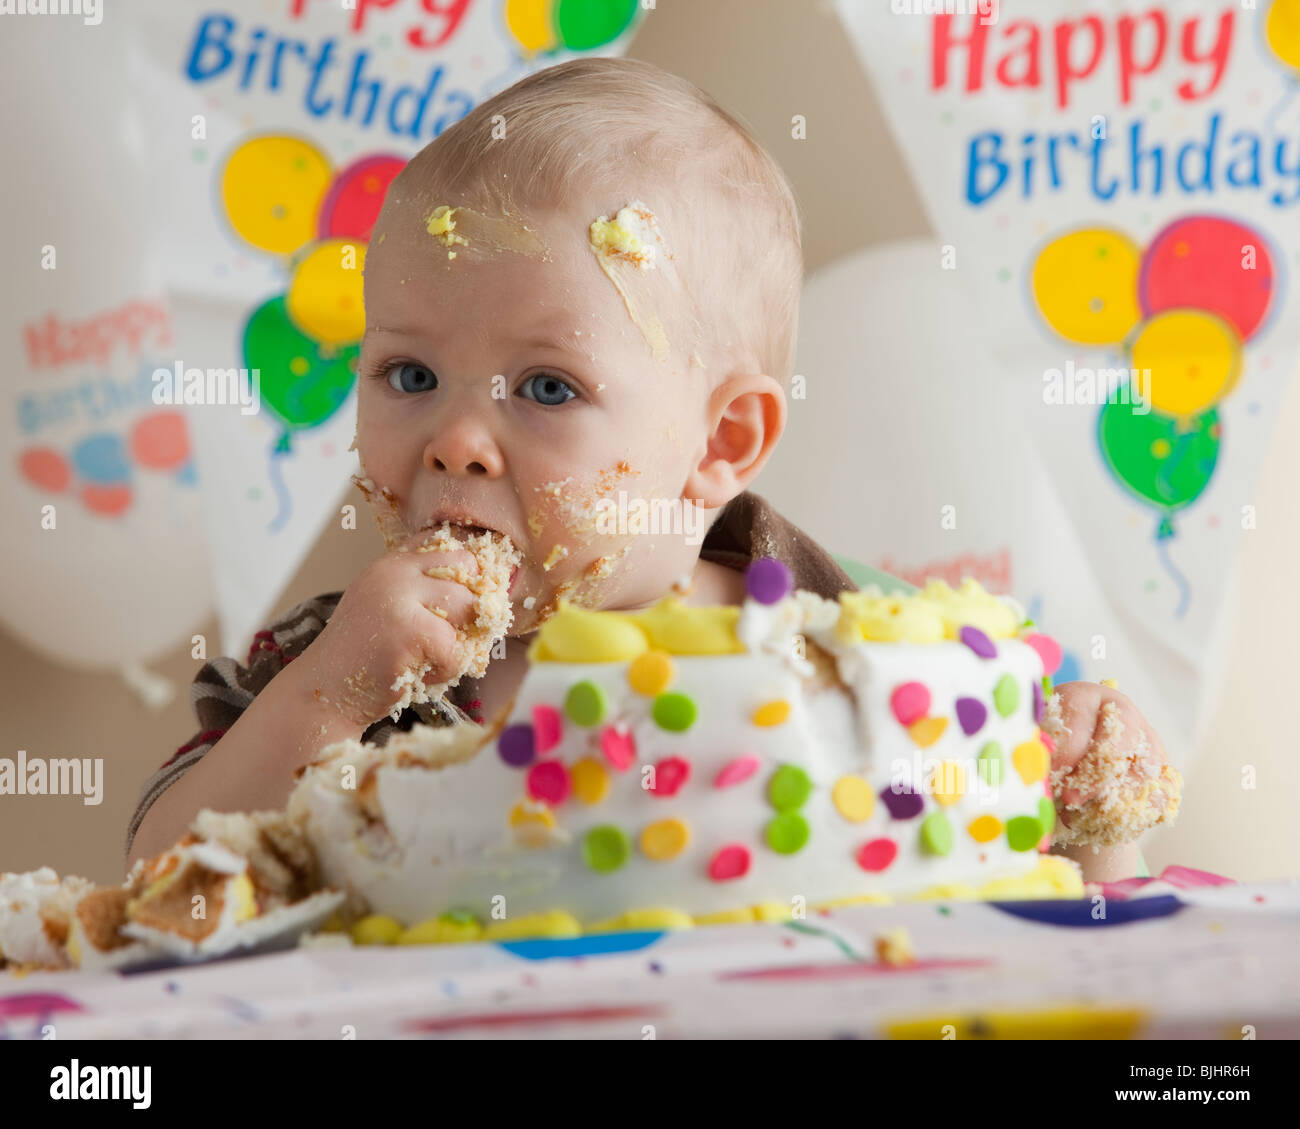 Marvelous Baby Eating Birthday Cake Stock Photo 28665577 Alamy Funny Birthday Cards Online Inifofree Goldxyz